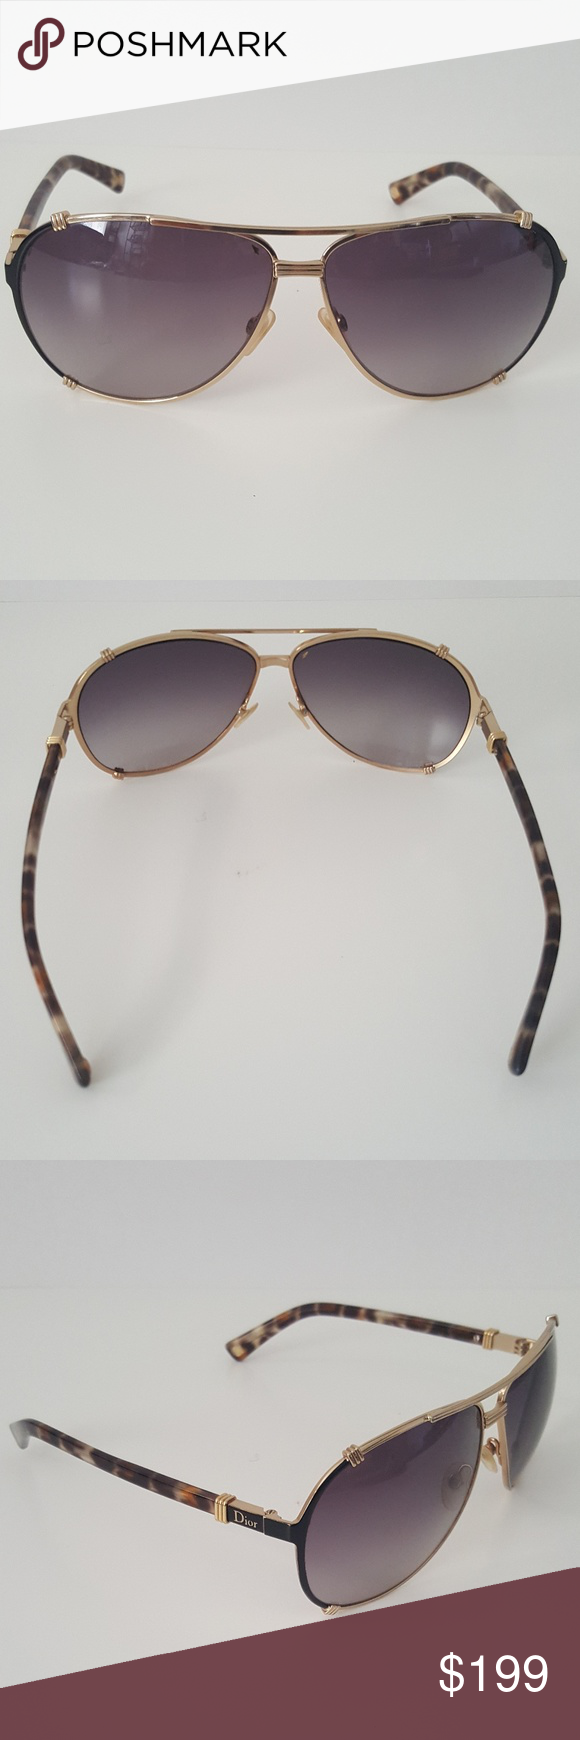 3fe56365714c Christian Dior Chicago 2 Aviator Sunglasses Dior Women s Chicago 2 XMGHA Aviator  Sunglasses in Gold Black Brown Tortoise with Gradient Lenses. 63mm.